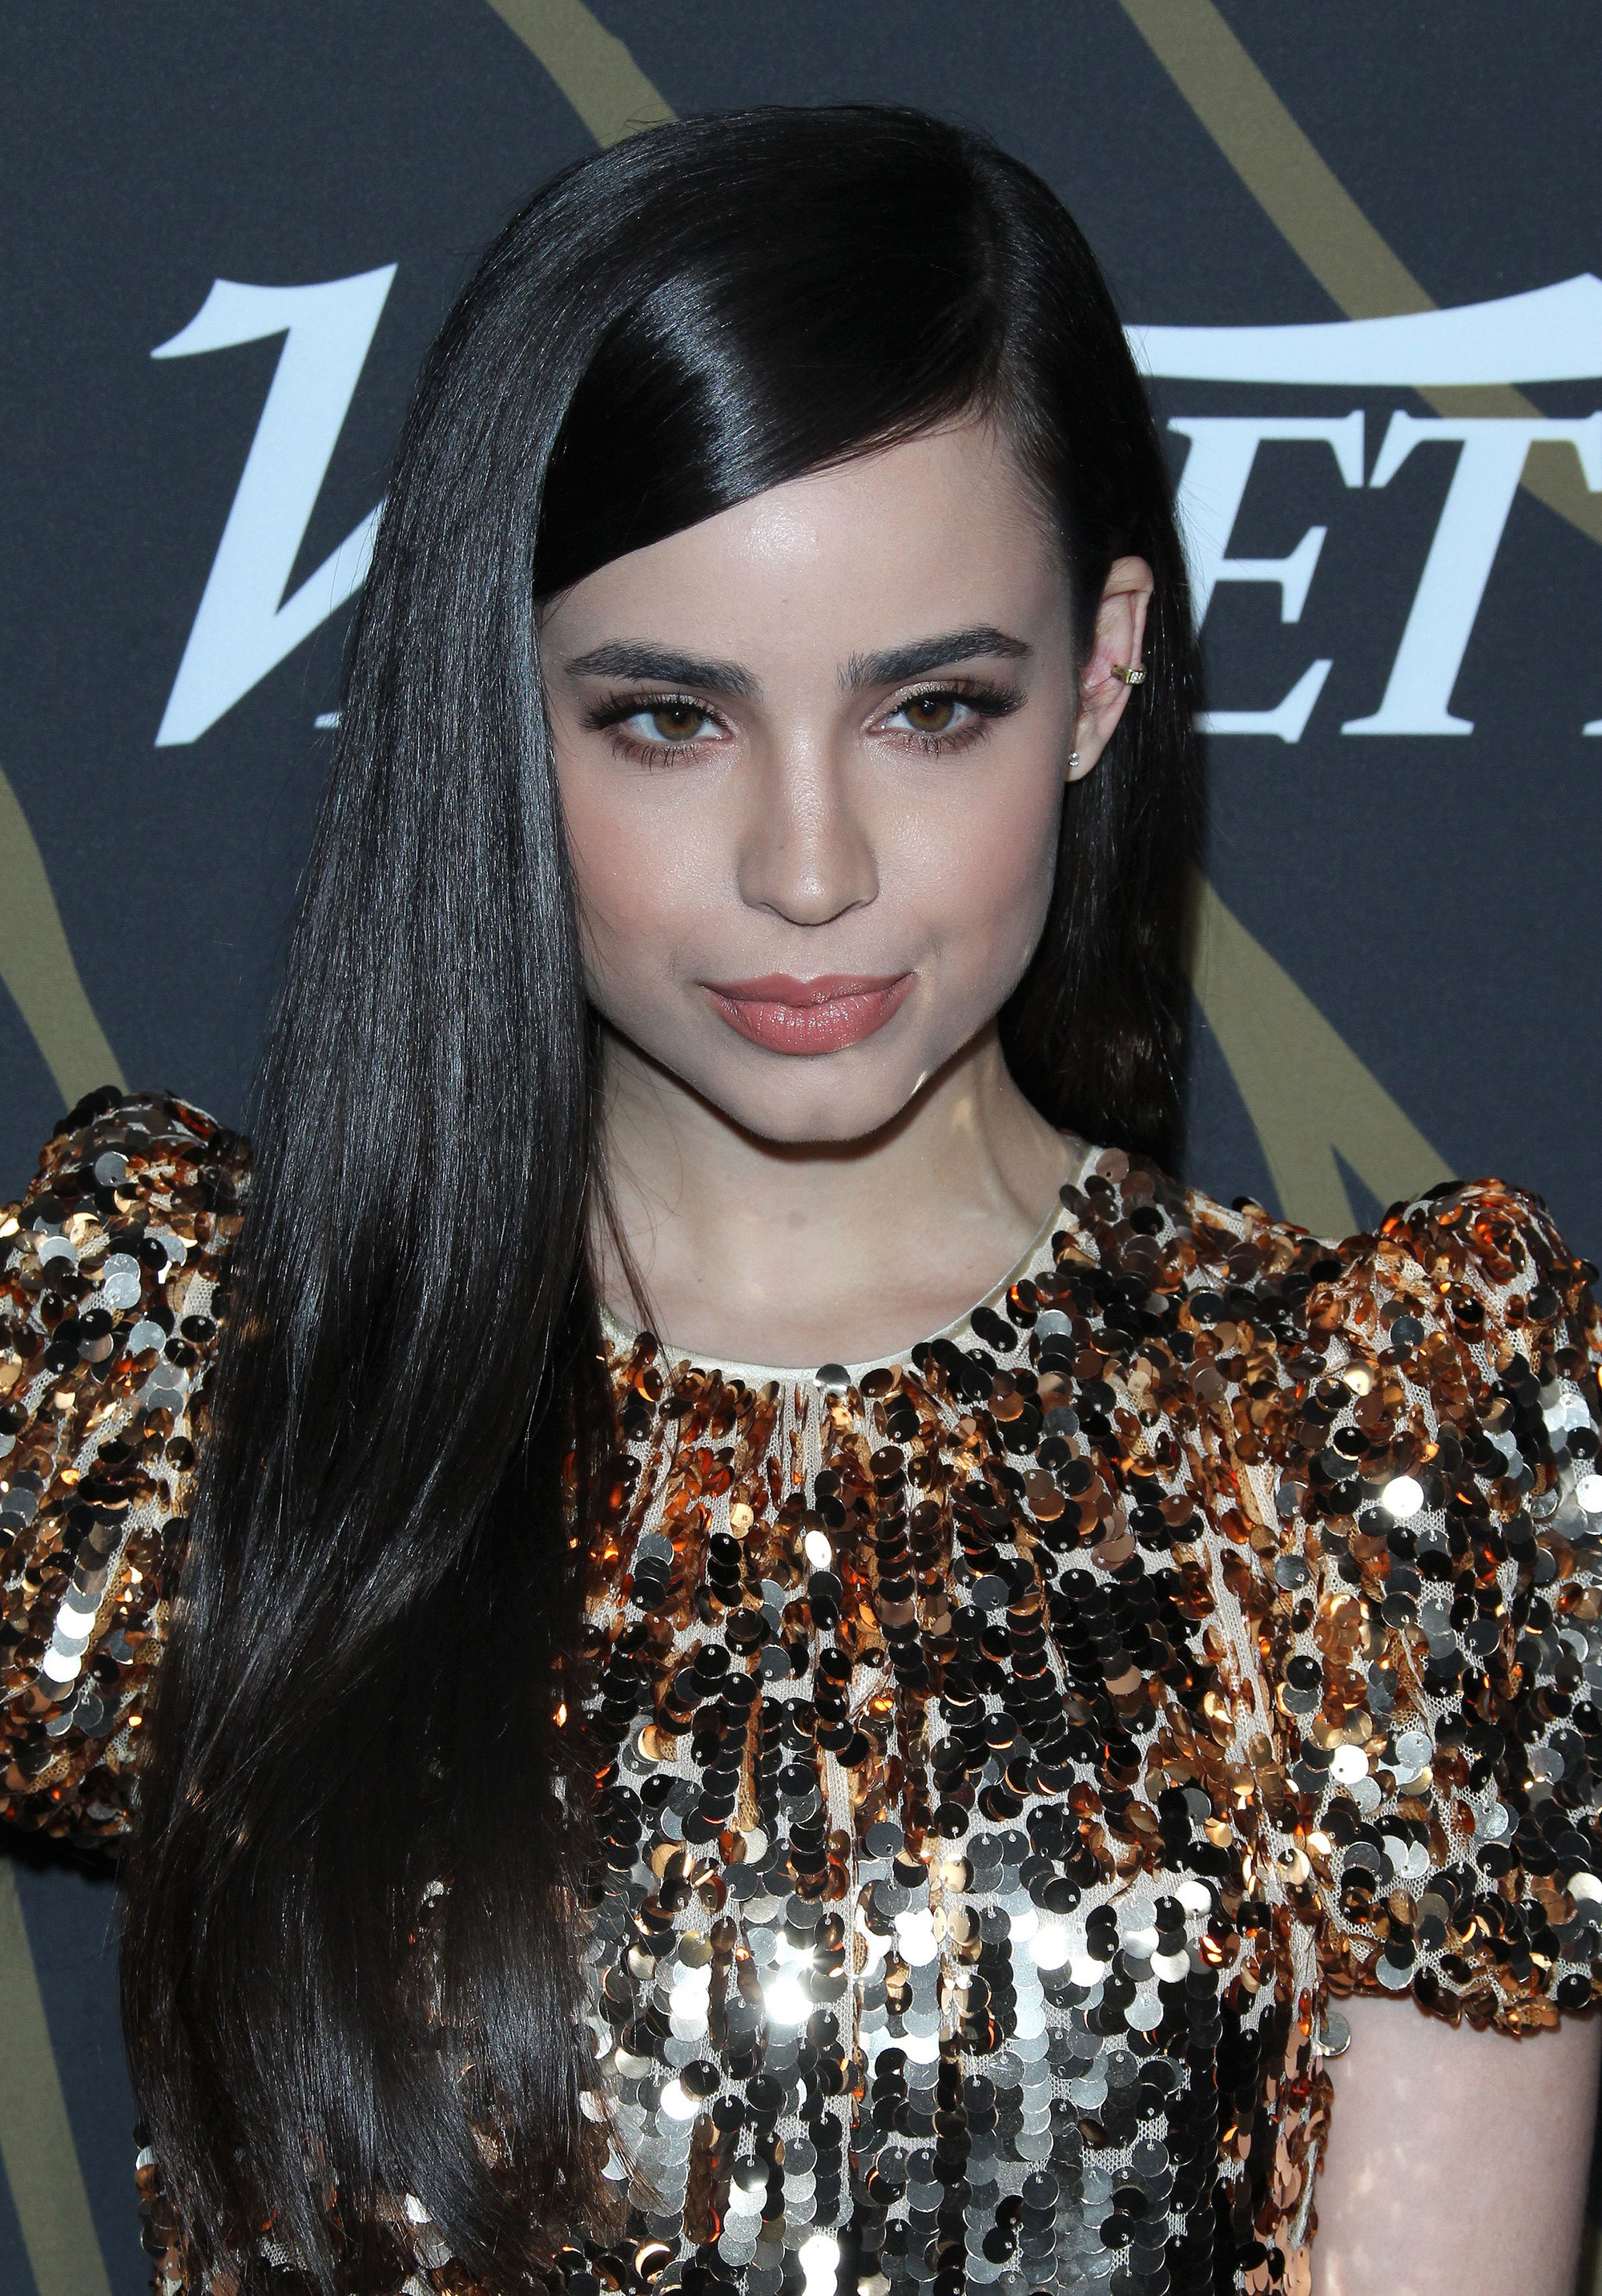 Long hair ideas: Sofia Carson with glossy side part hairstyle, wearing glitzy dress on the red carpet